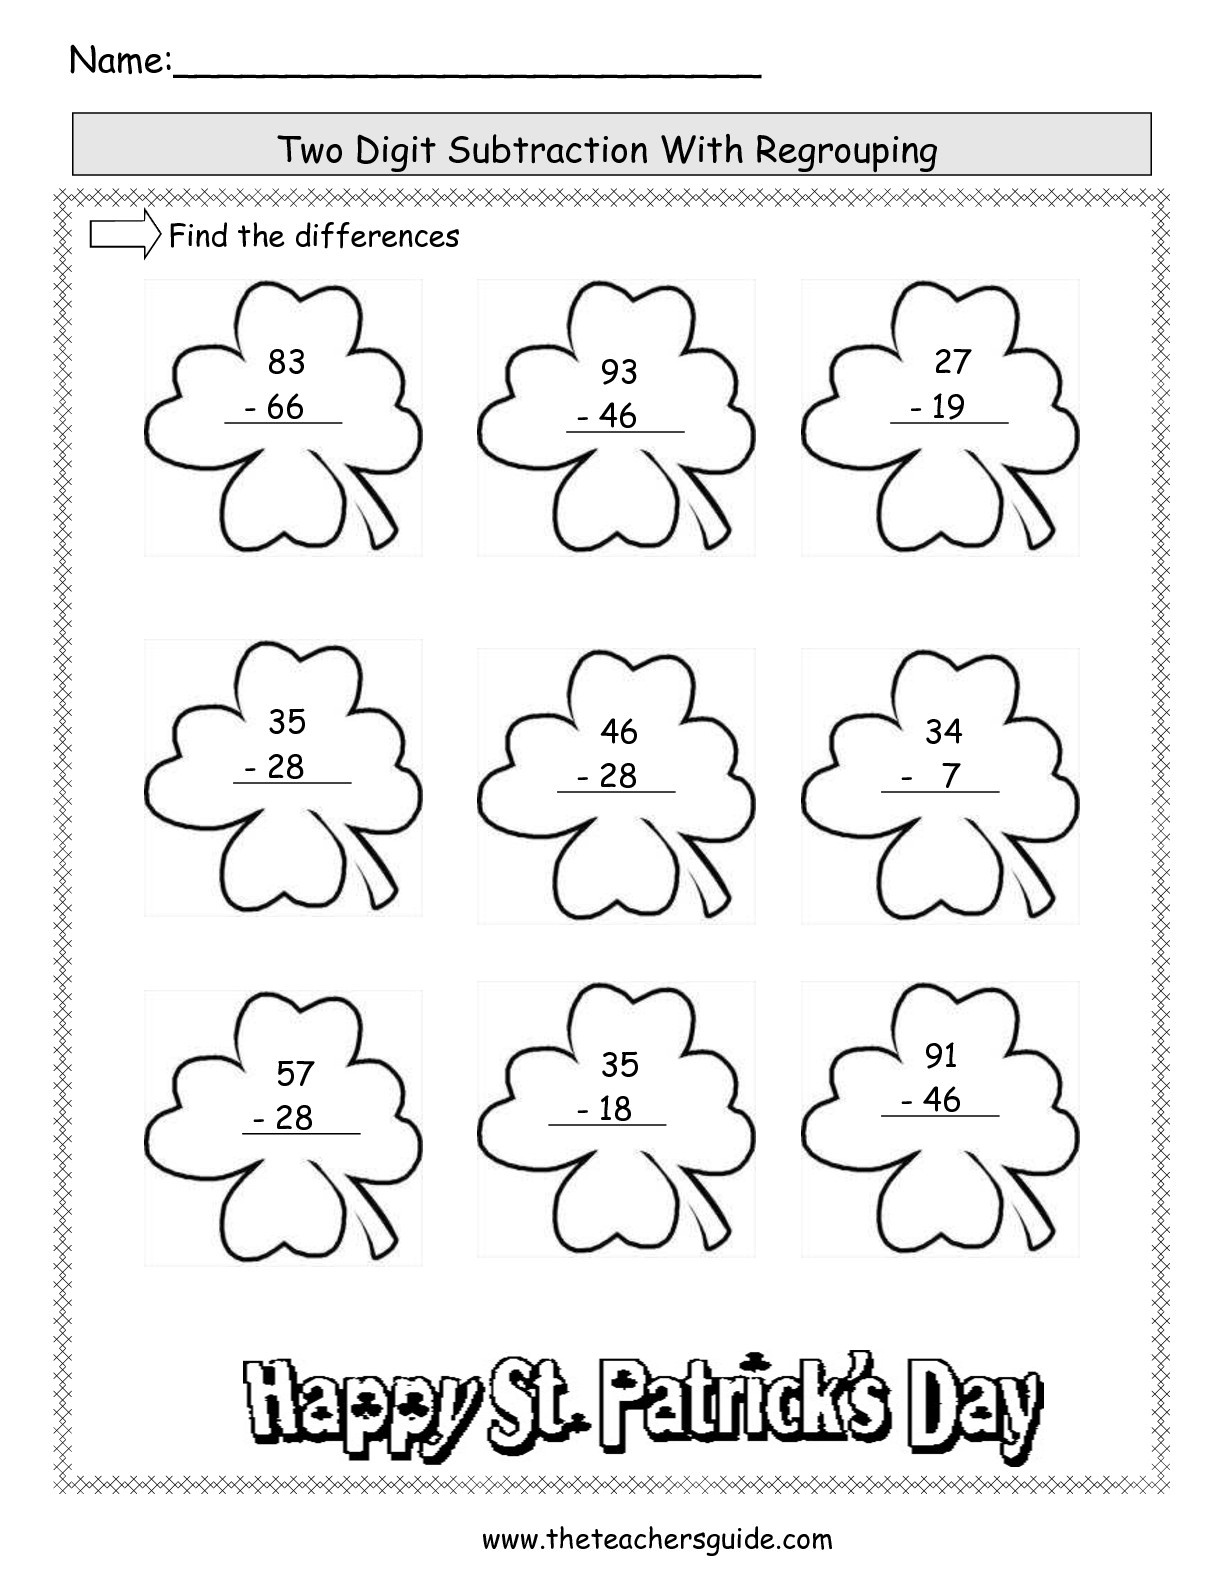 St. Patrick's Day Lesson Plans, Themes, Printouts, Crafts - Free Printable St Patrick Day Worksheets